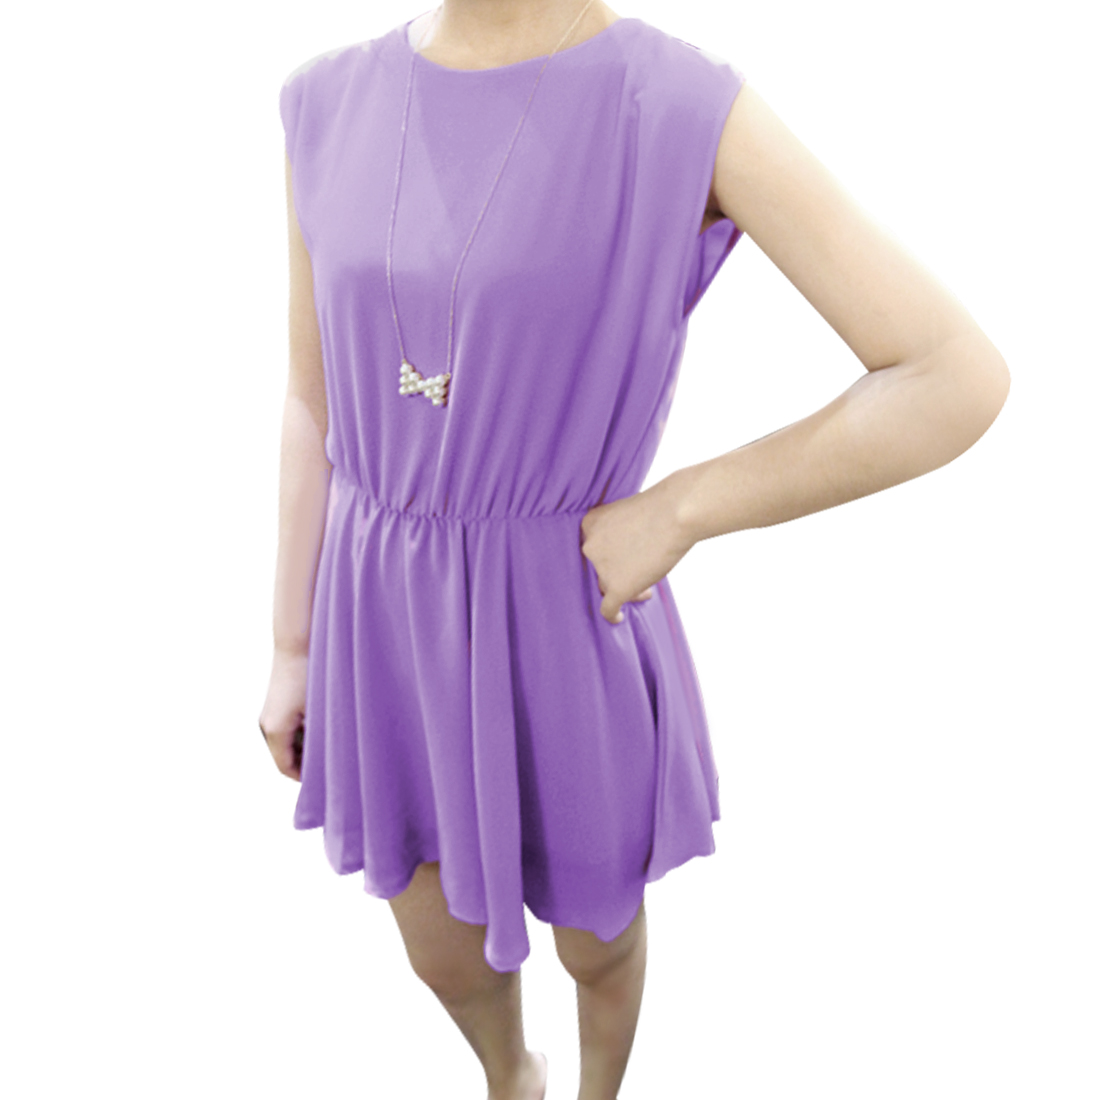 Ladies Chic Round Neck Sleeveless Elastic Waist Lavender Mini Dress XS